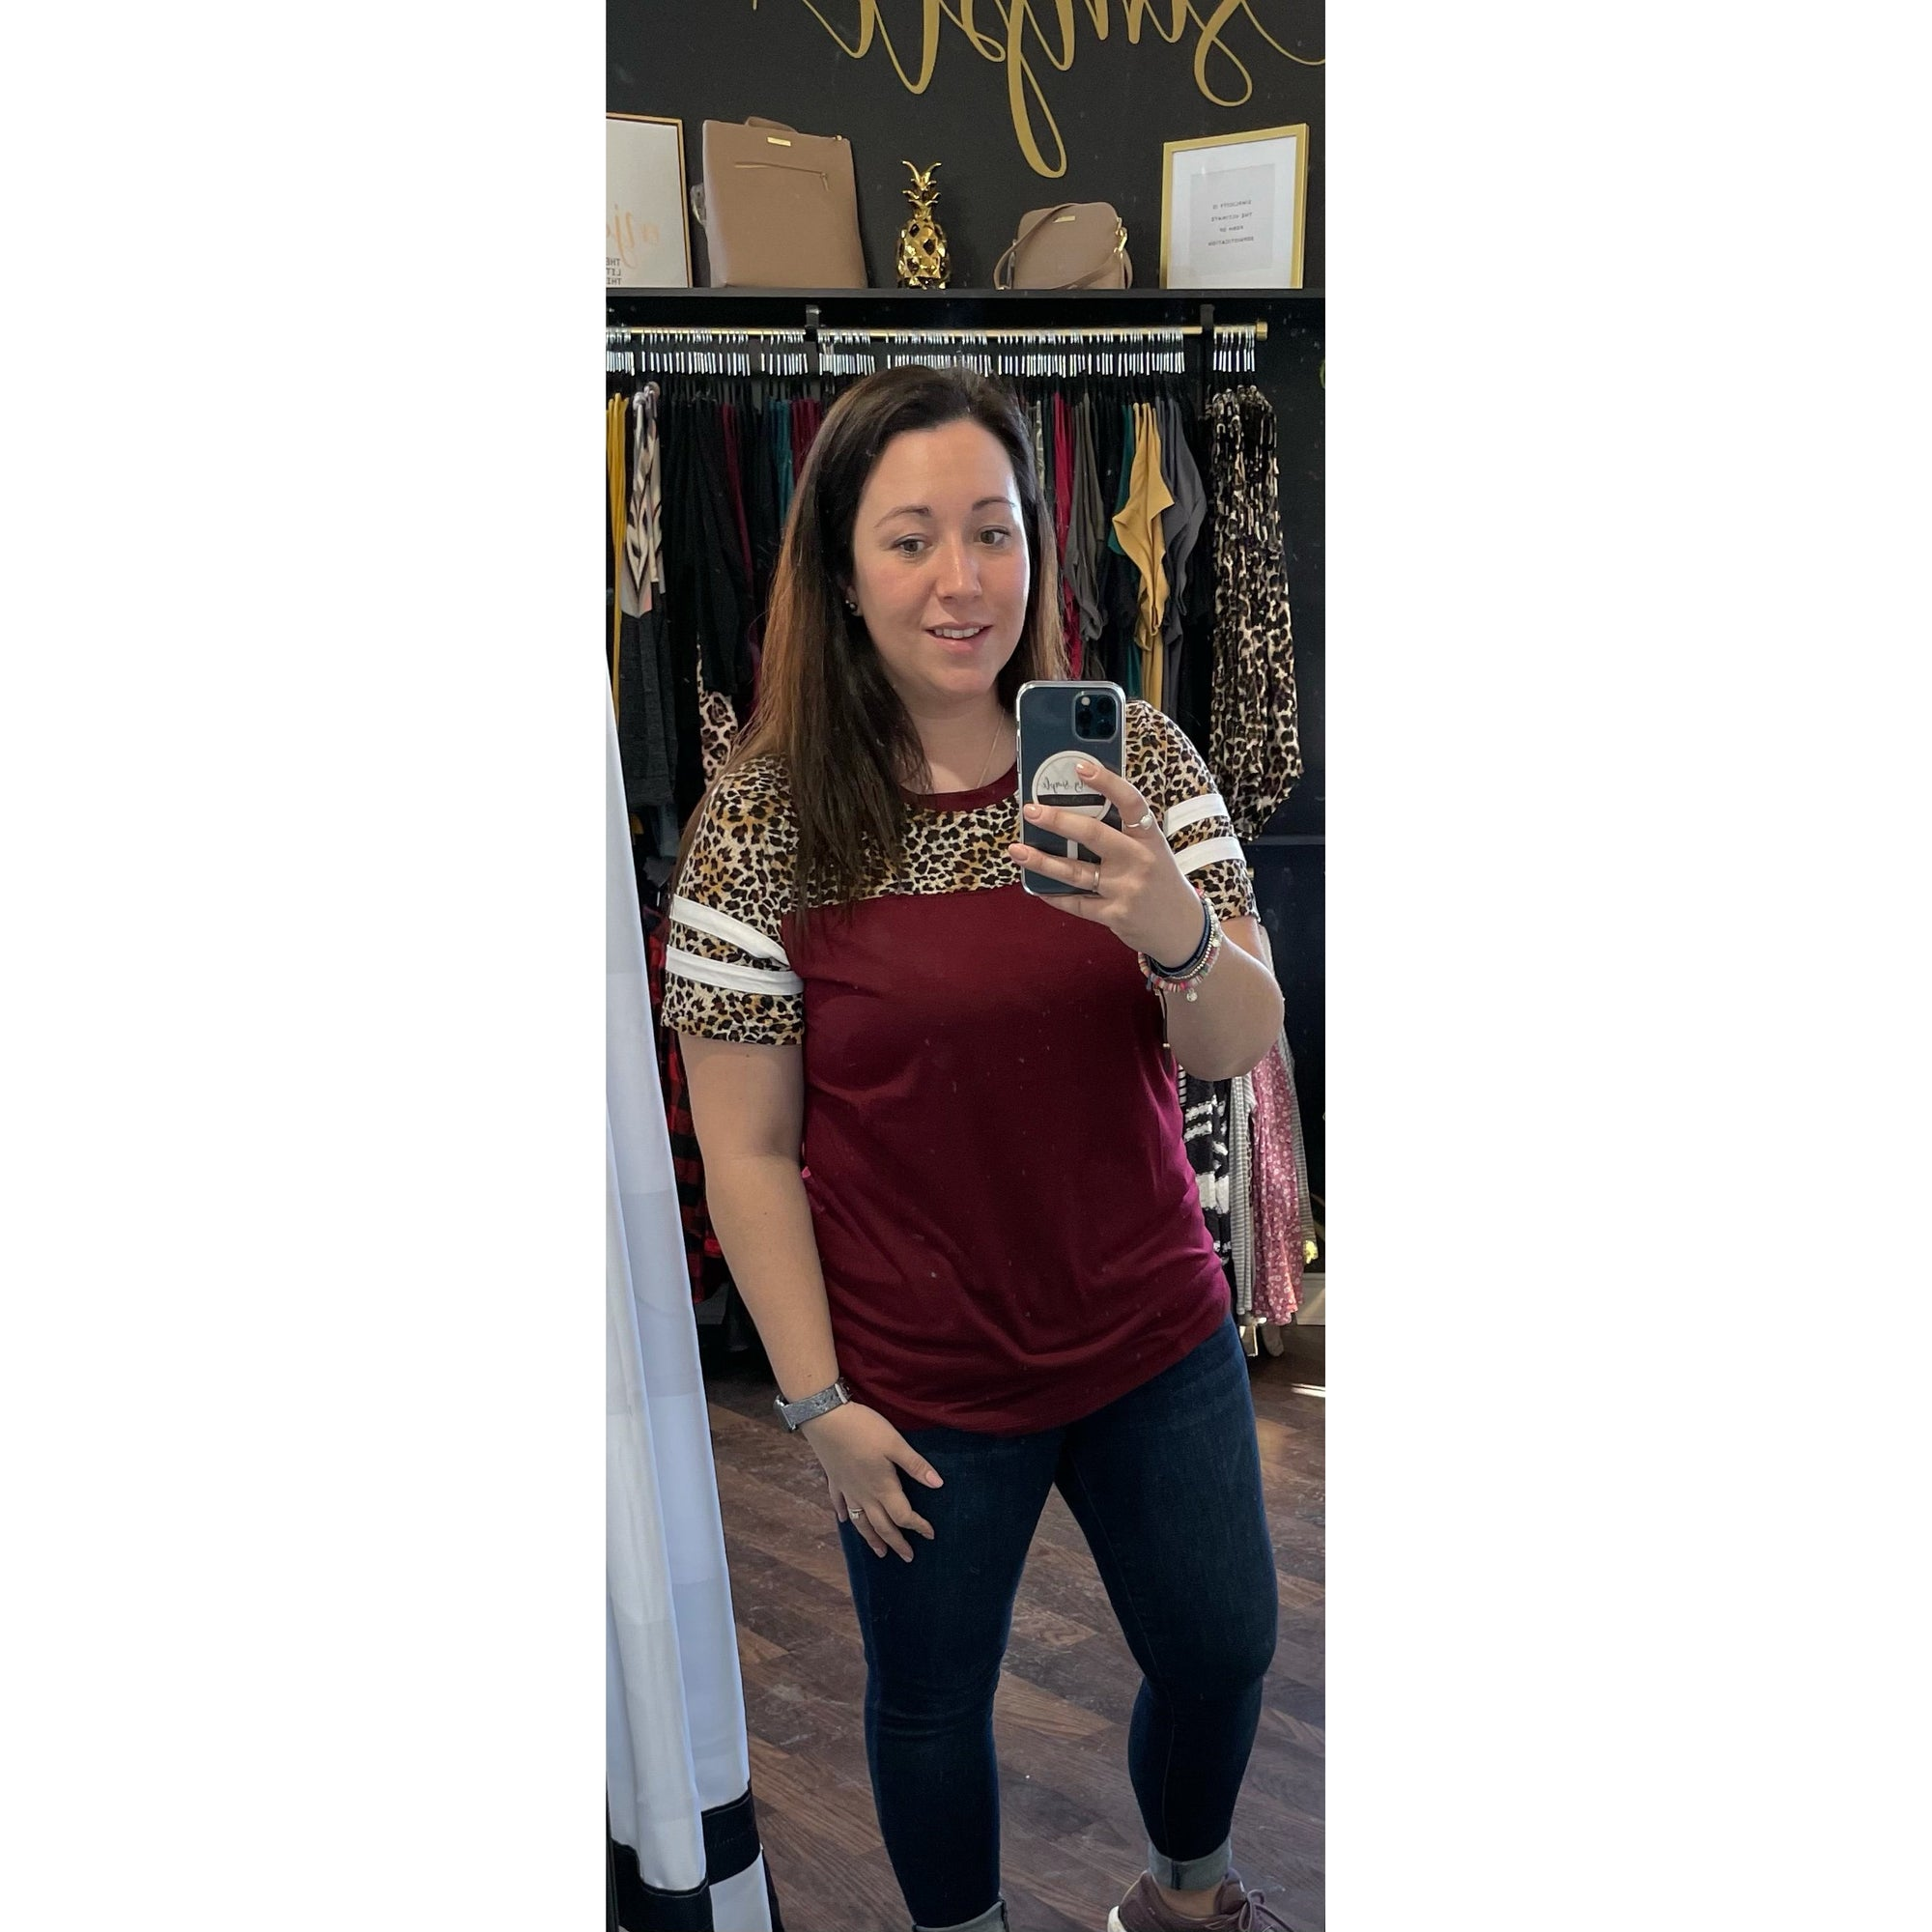 Burgundy & Leopard Short Sleeve Top - Online Exclusive